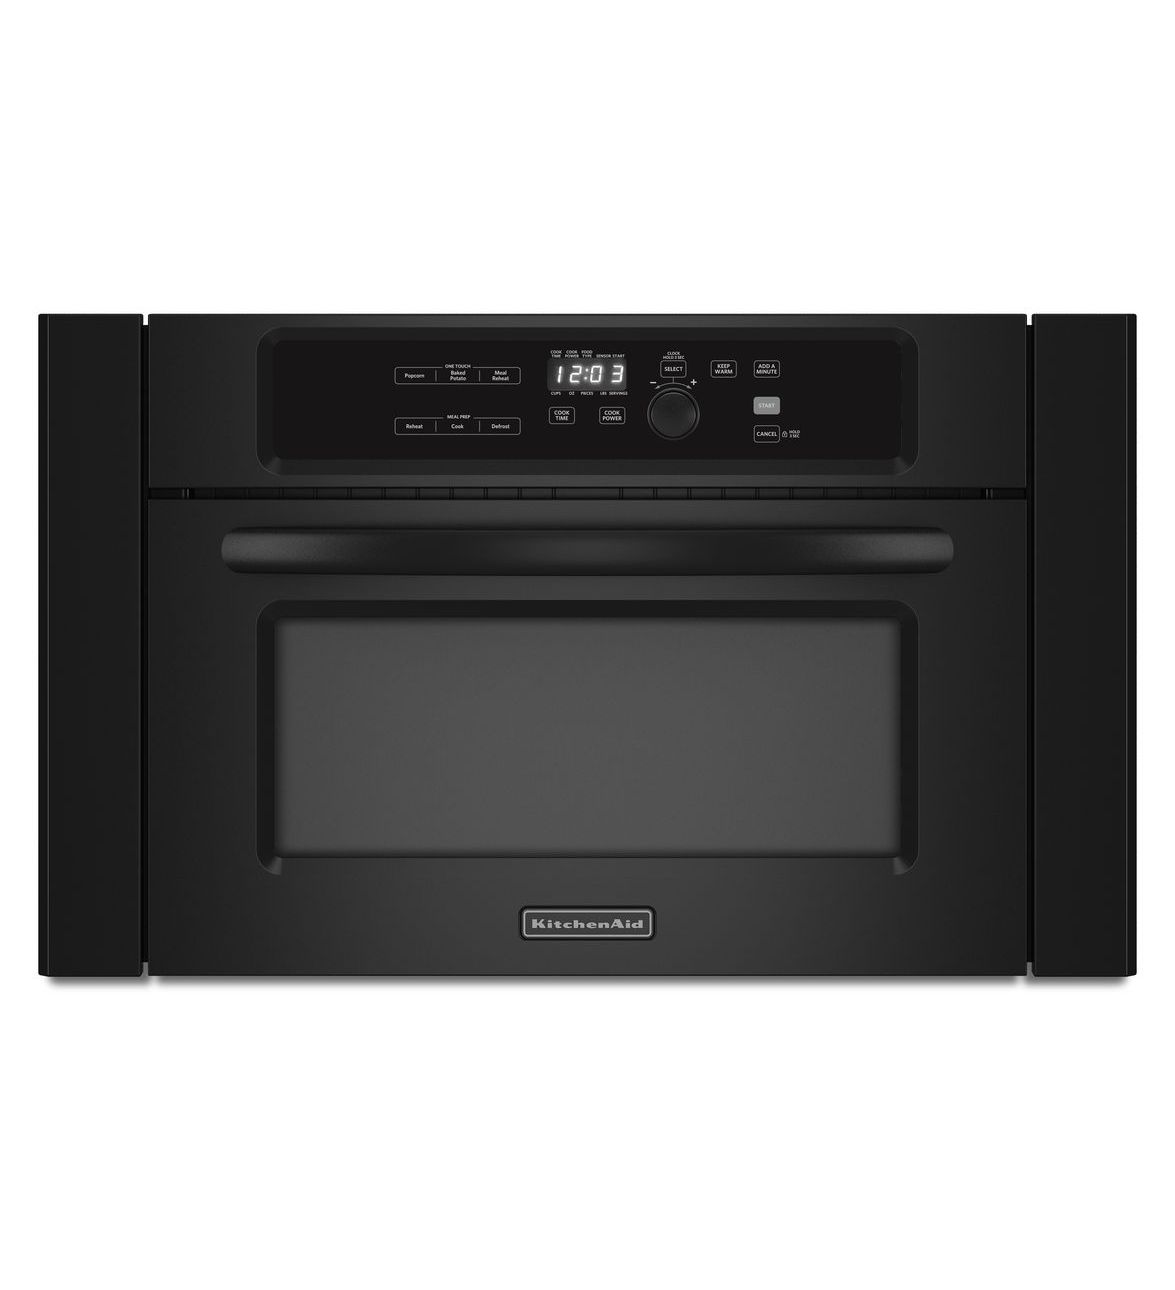 Kitchenaid Kbms1454bbl 24 Quot Built In Microwave Oven With